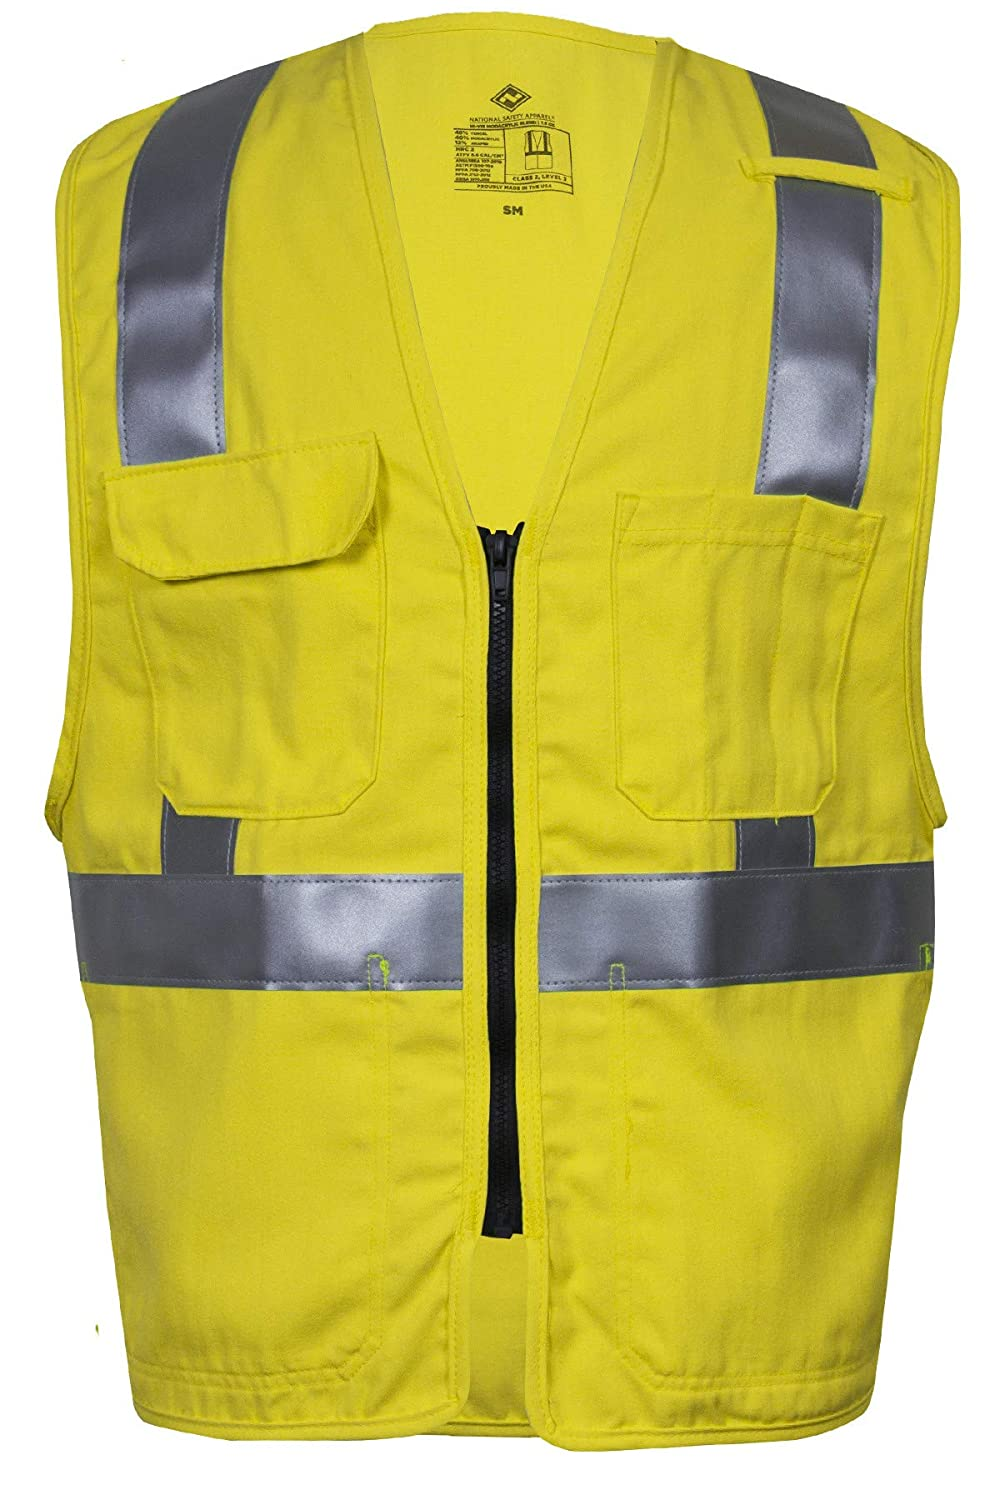 Same day shipping National Ranking TOP11 Safety Apparel V21TV2ZLG Deluxe FR Hi-Vis 2 Class Safet